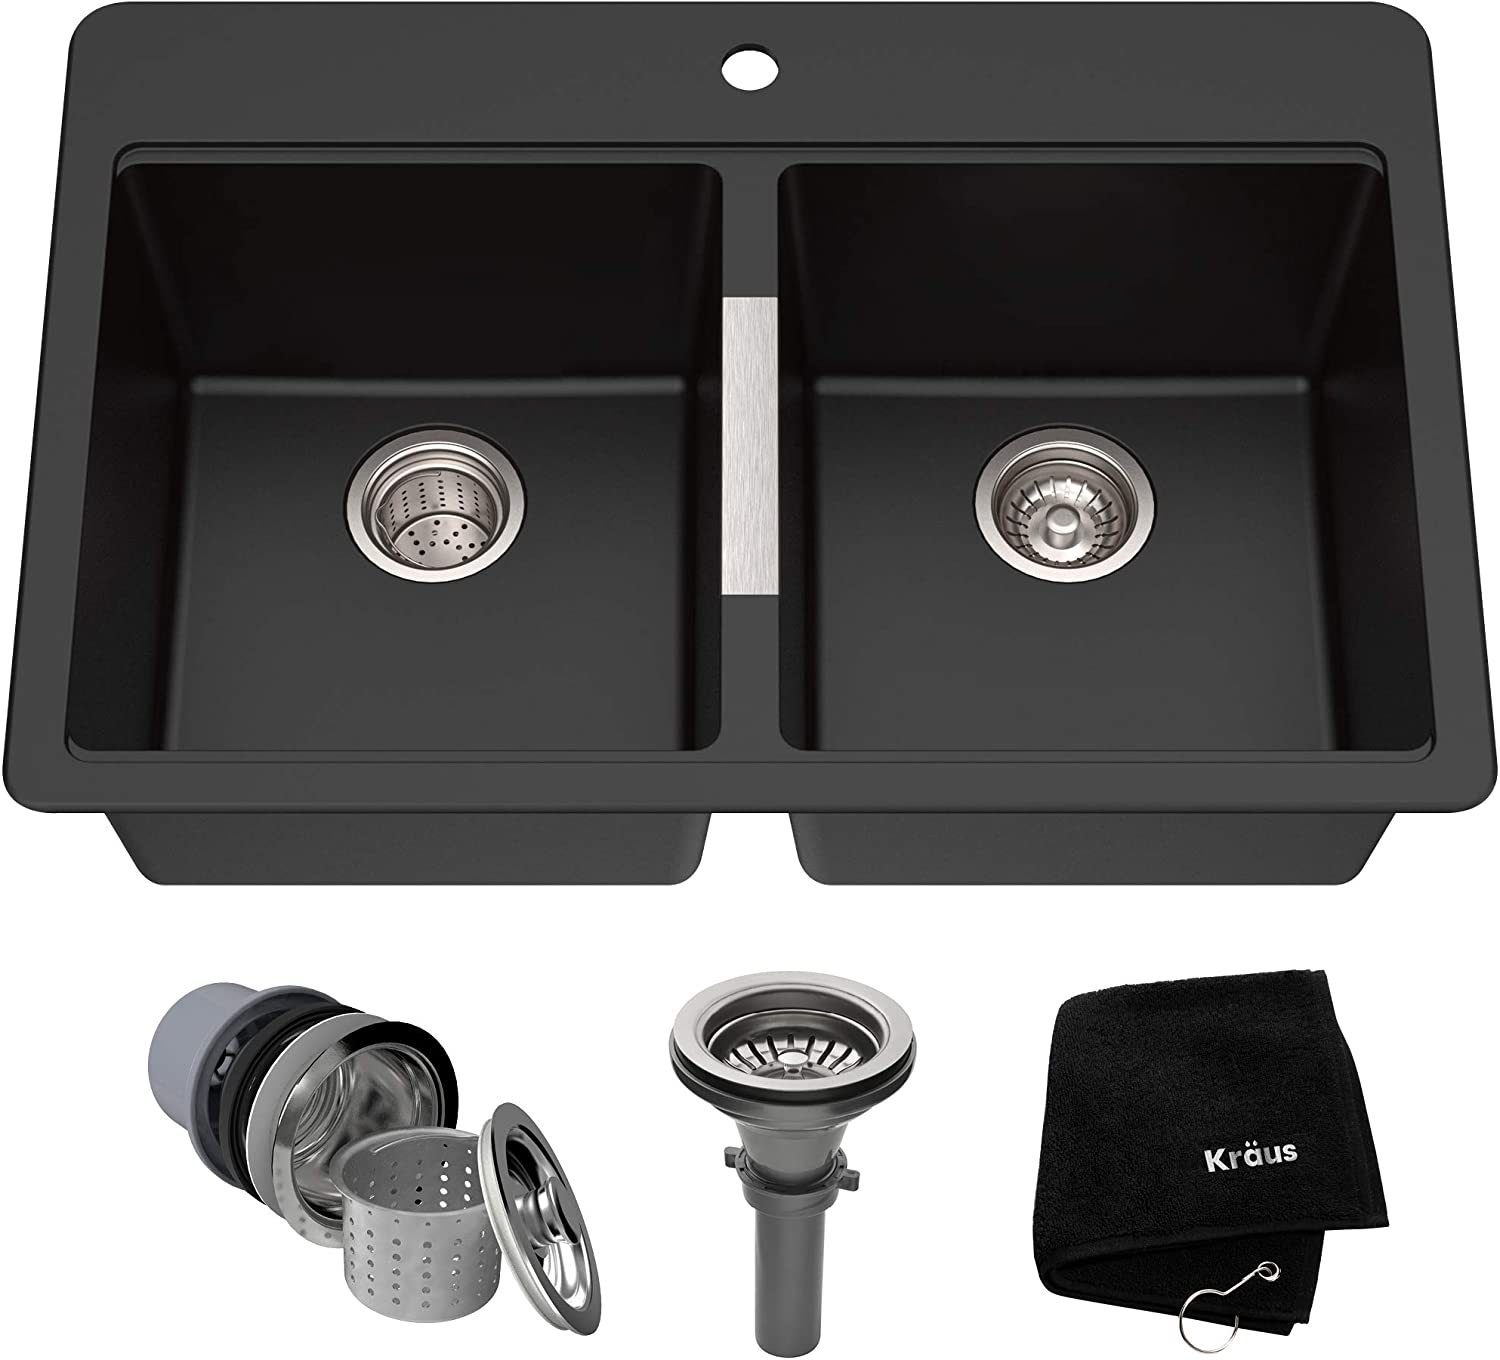 Kraus KGD-433B 33 1 2 inch Dual Mount 50 50 Double Bowl Black Onyx Granite Kitchen Sink